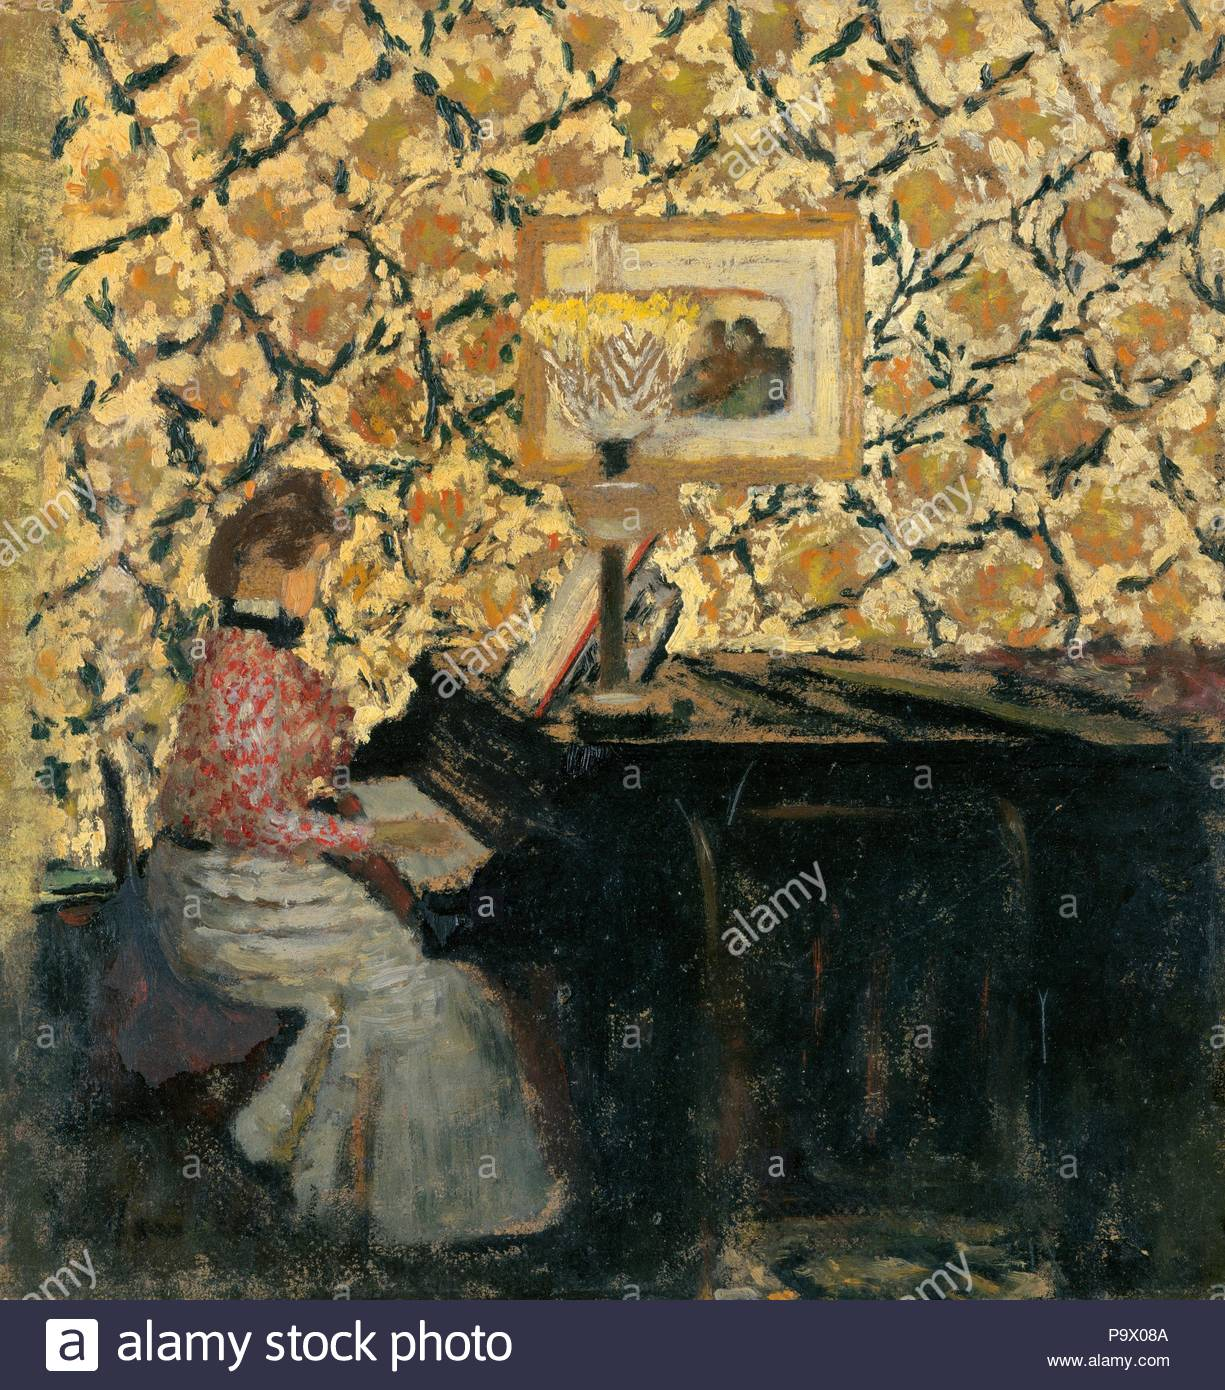 Misia at the Piano, 1895 or early 1896, Oil on cardboard, 10 1/4 x 9 13/16 in. (26 x 25 cm), Paintings, Édouard Vuillard (French, Cuiseaux 1868–1940 La Baule). - Stock Image